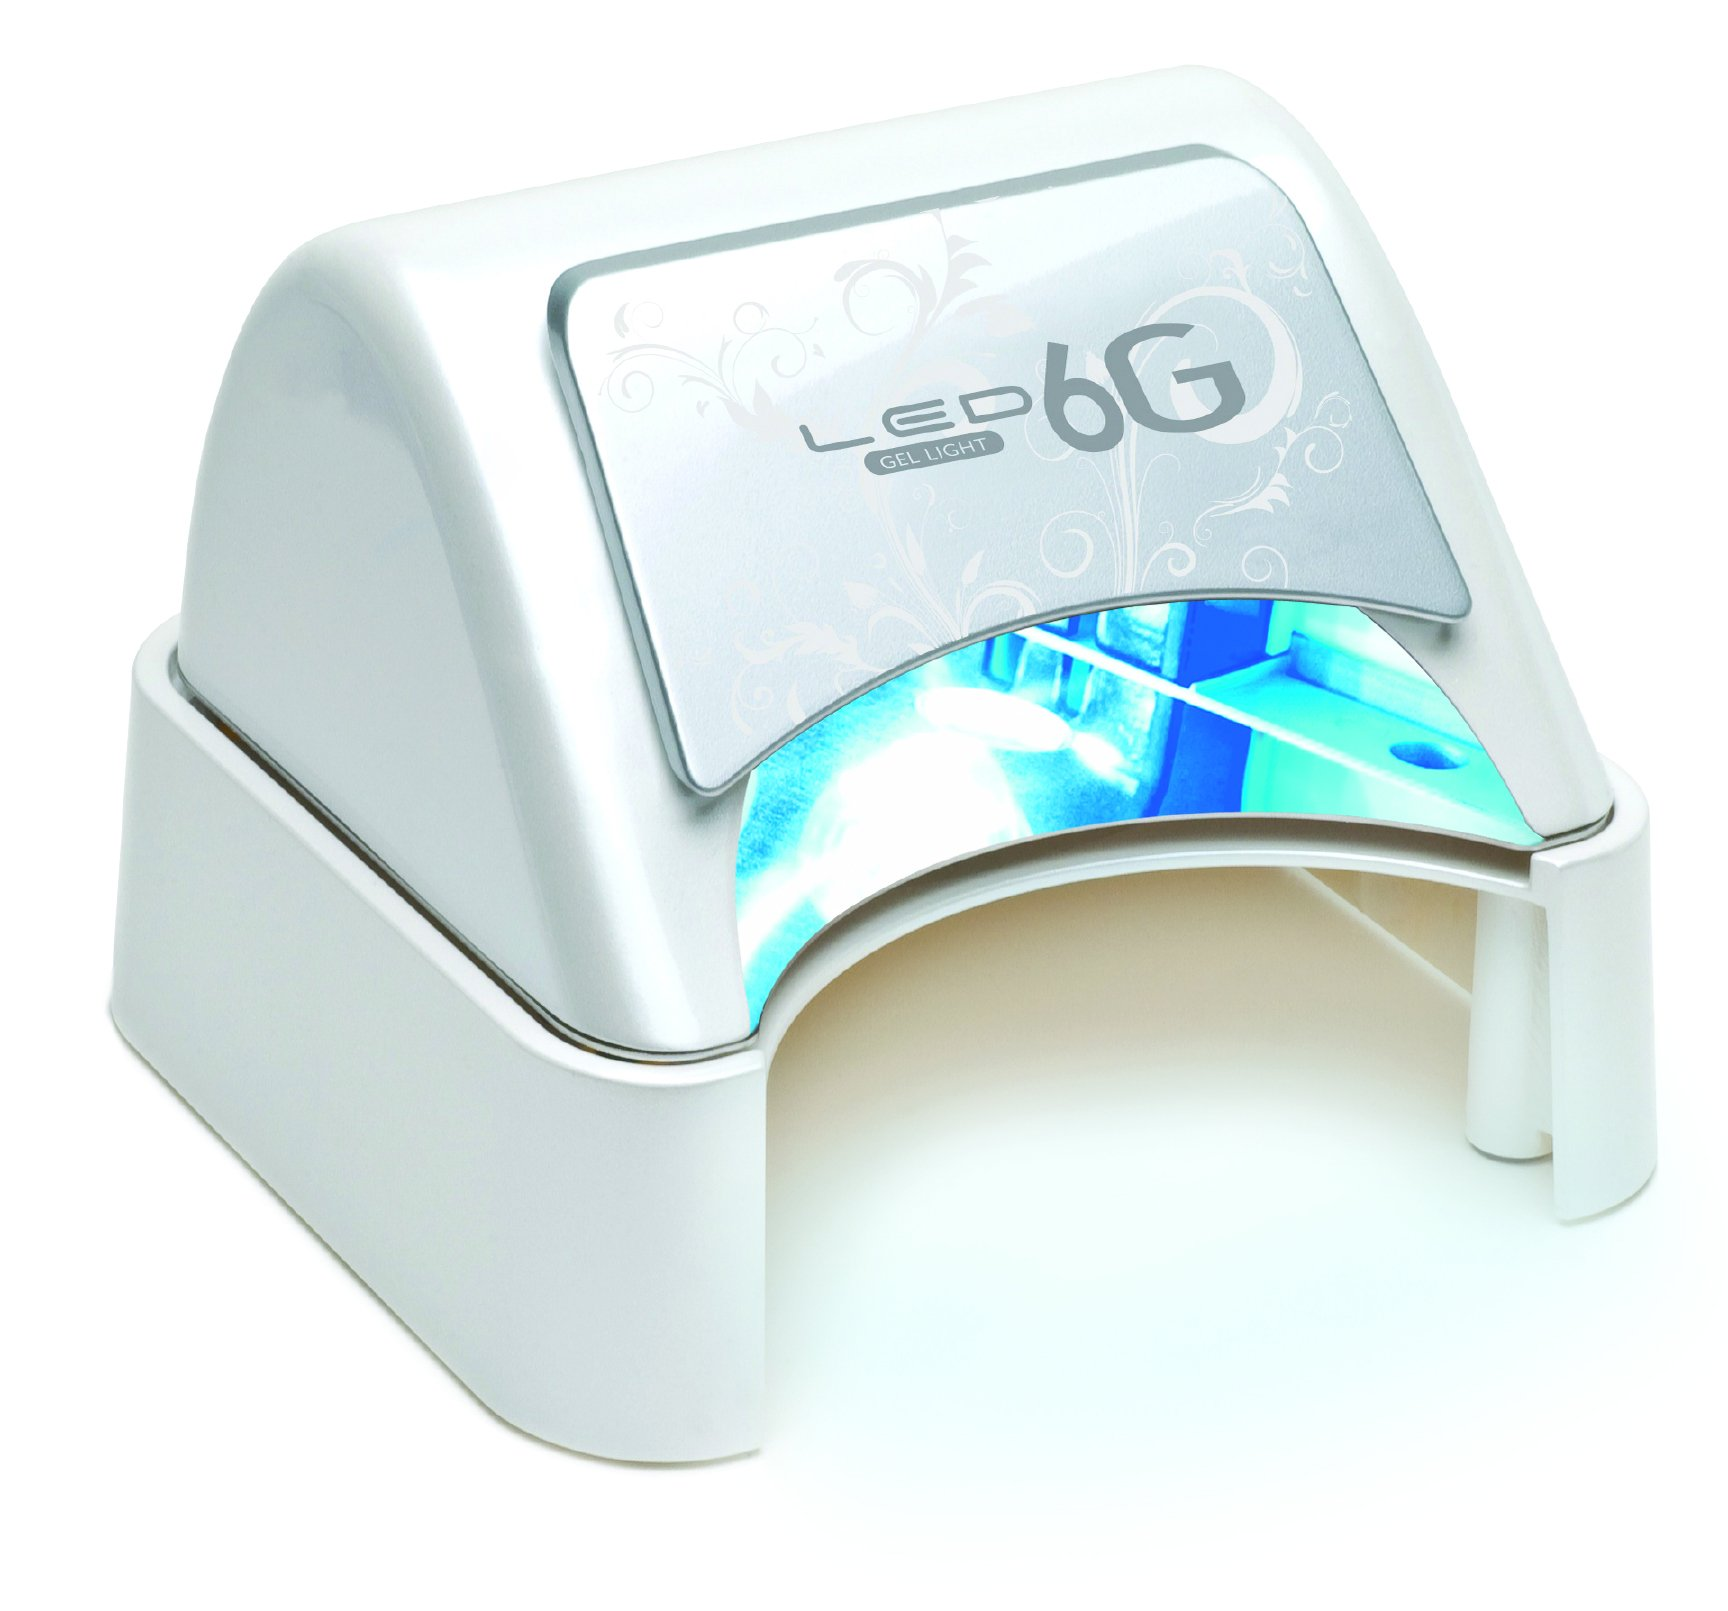 Gelish Harmony 6G 30W LED Lamp With Magnetic Tray For Curing Manicures   01374